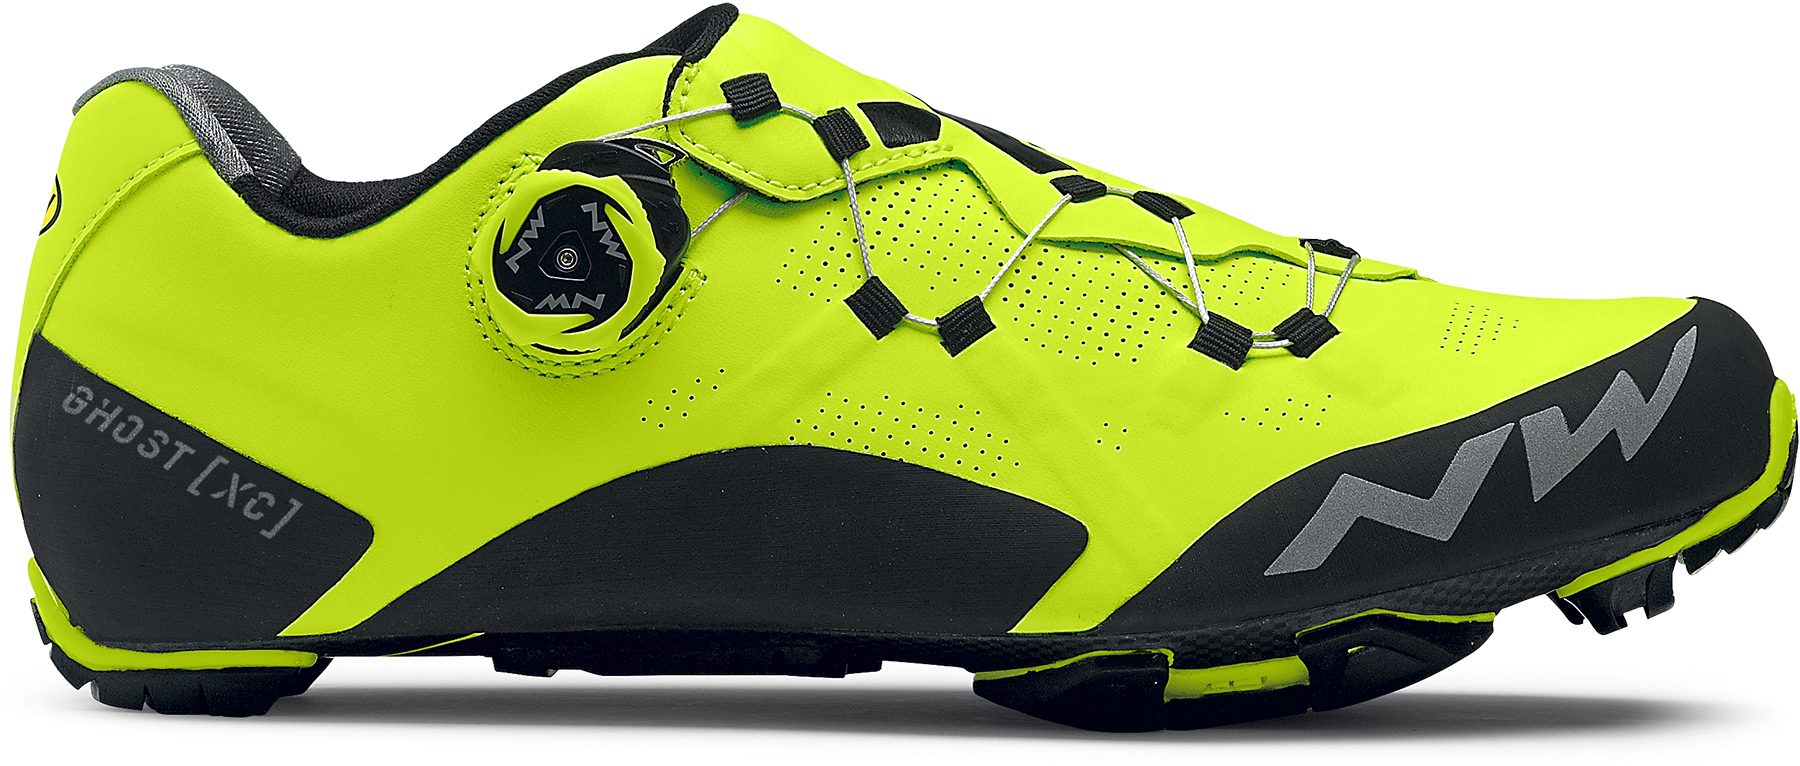 Northwave Ghost XC MTB Shoes (Yellow Fluo) | Sko